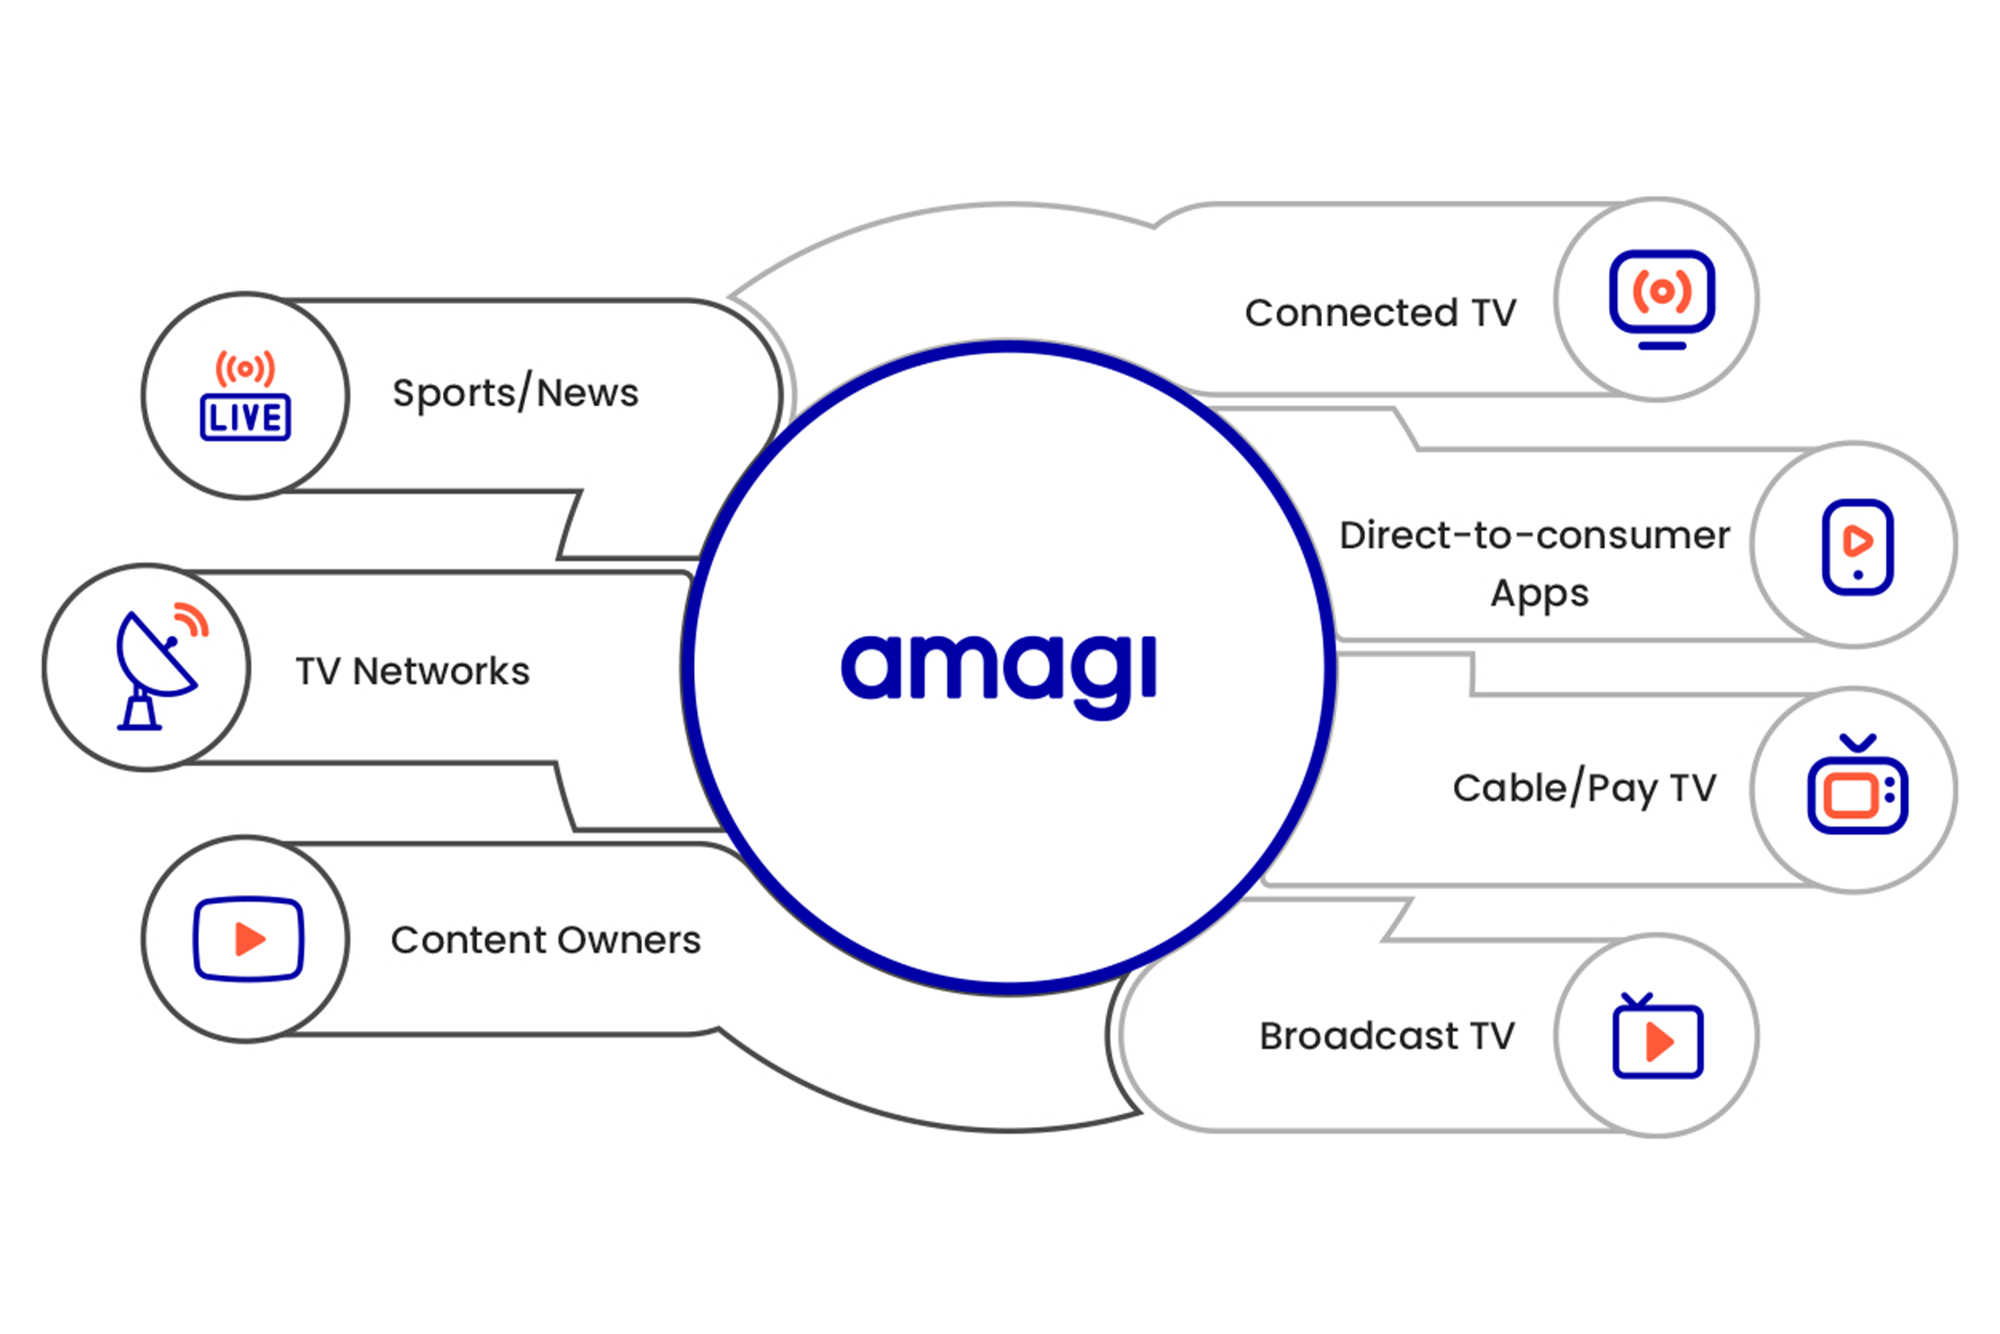 Amagi official product offering banner image